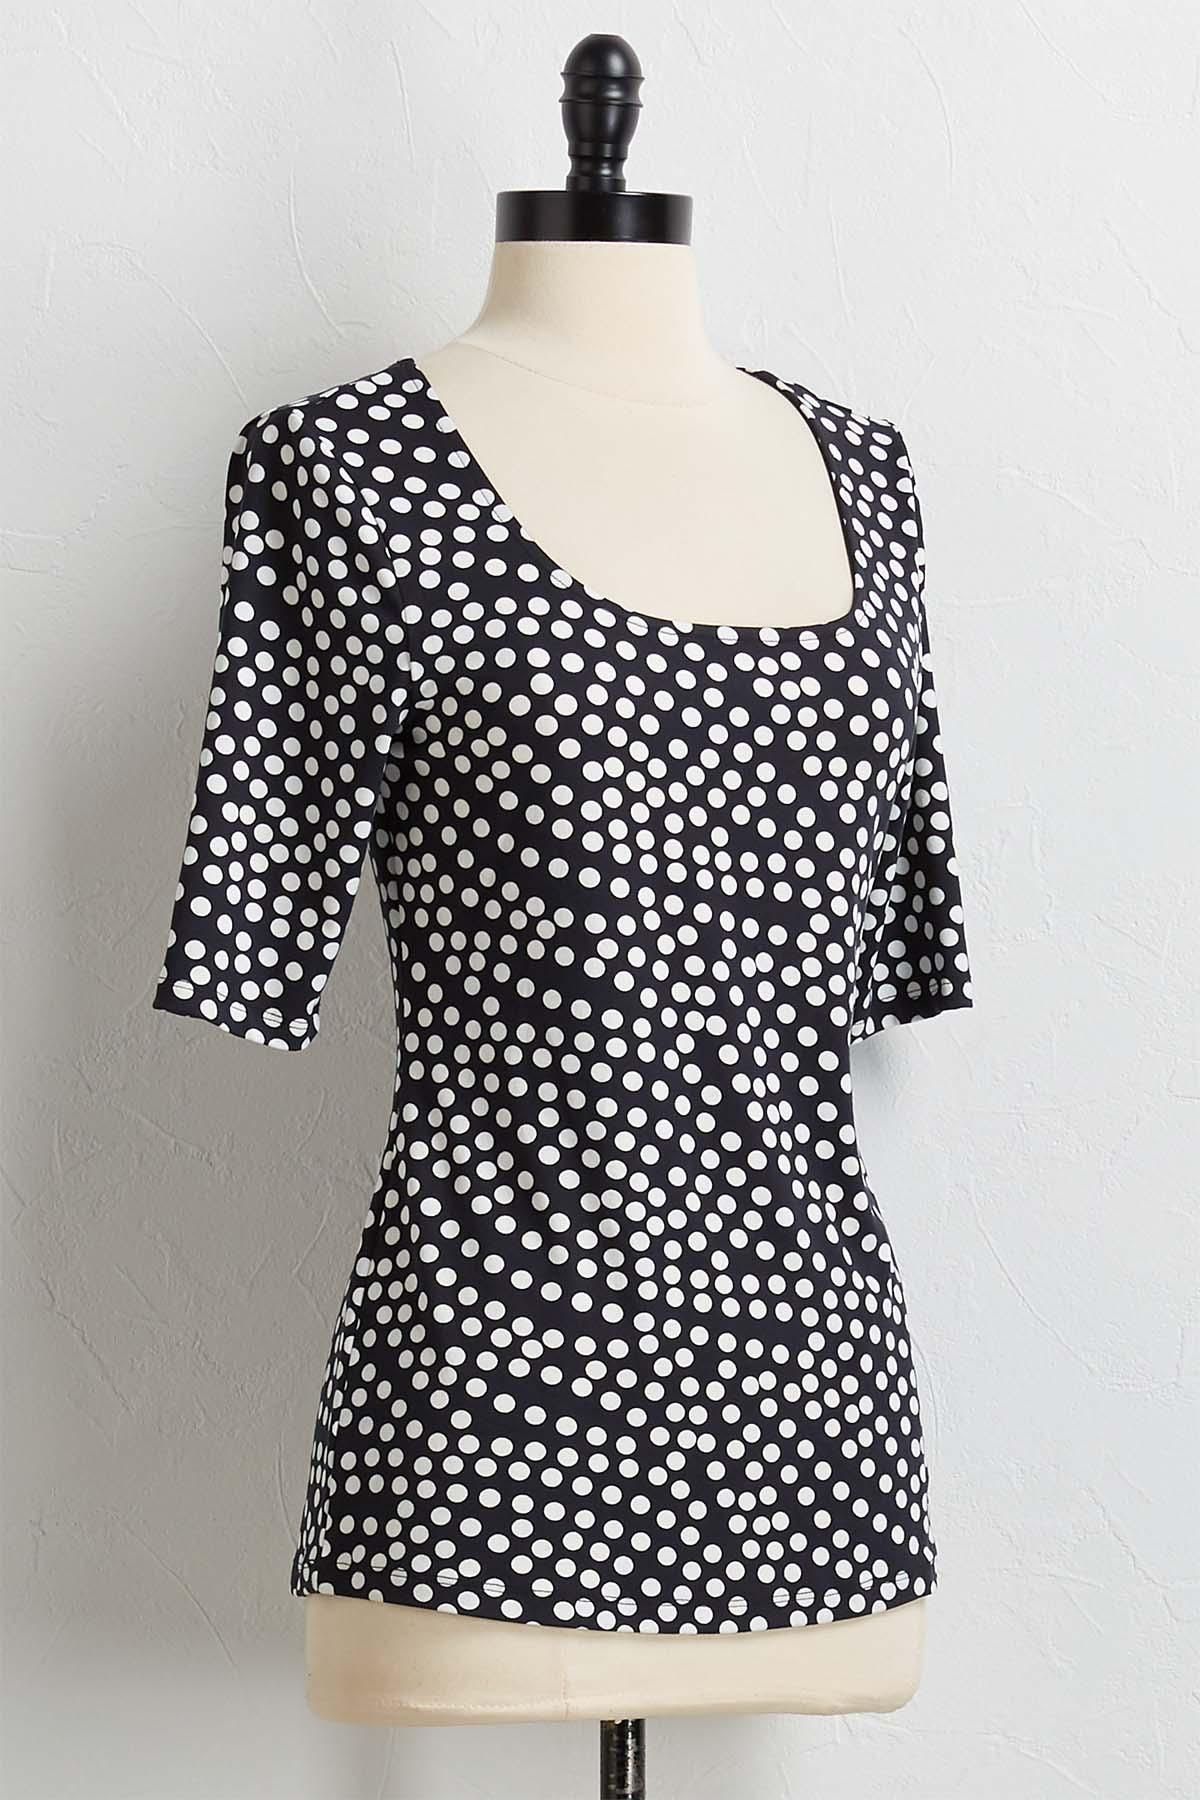 Dotted Scoop Neck Top